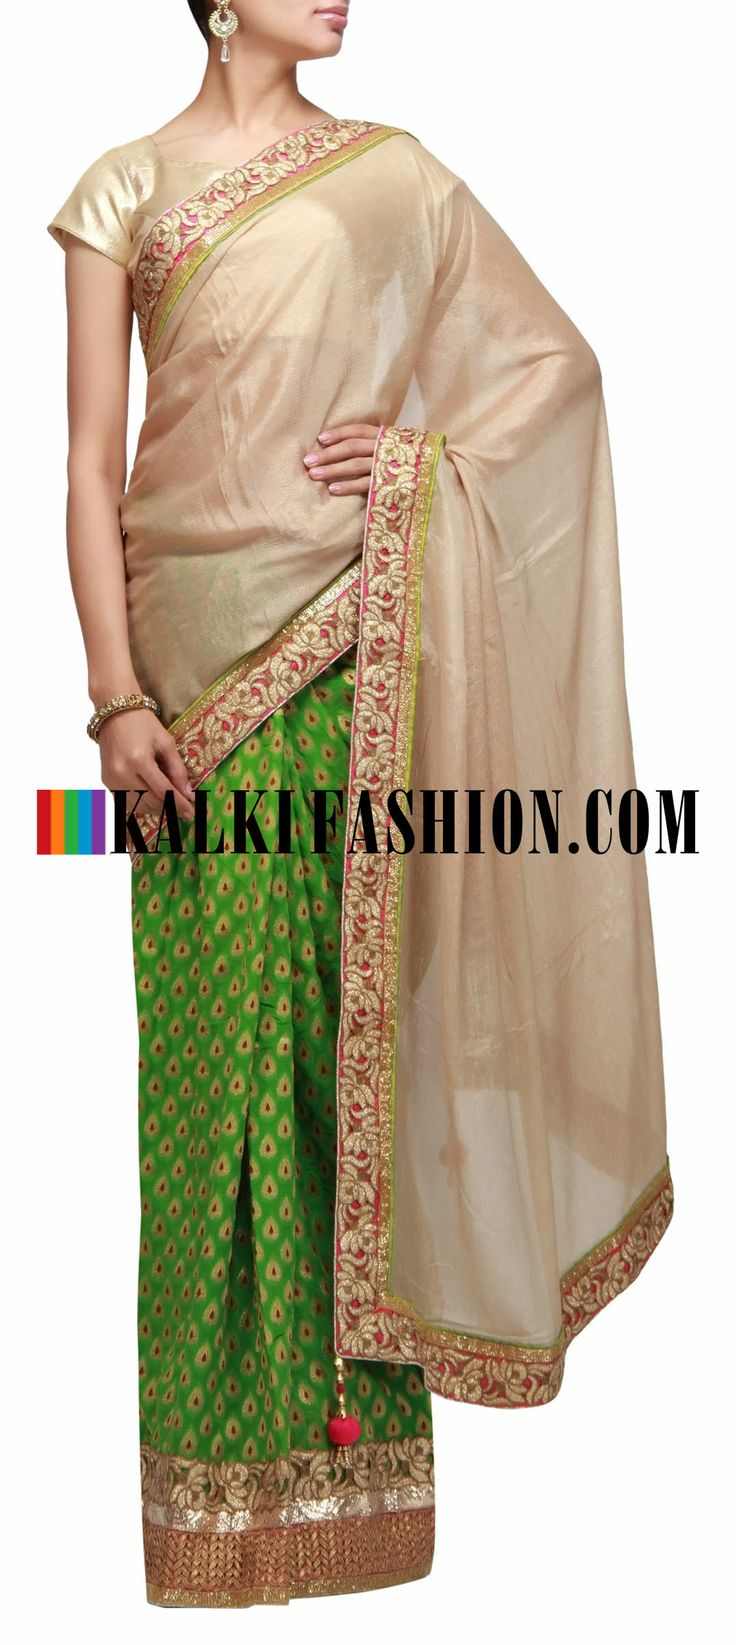 Buy Online from the link below. We ship worldwide (Free Shipping over US$100) http://www.kalkifashion.com/half-and-half-saree-in-gold-and-green-with-gotta-patti-and-cut-work-border.html Half and half saree in gold and green with gotta patti and cut work border